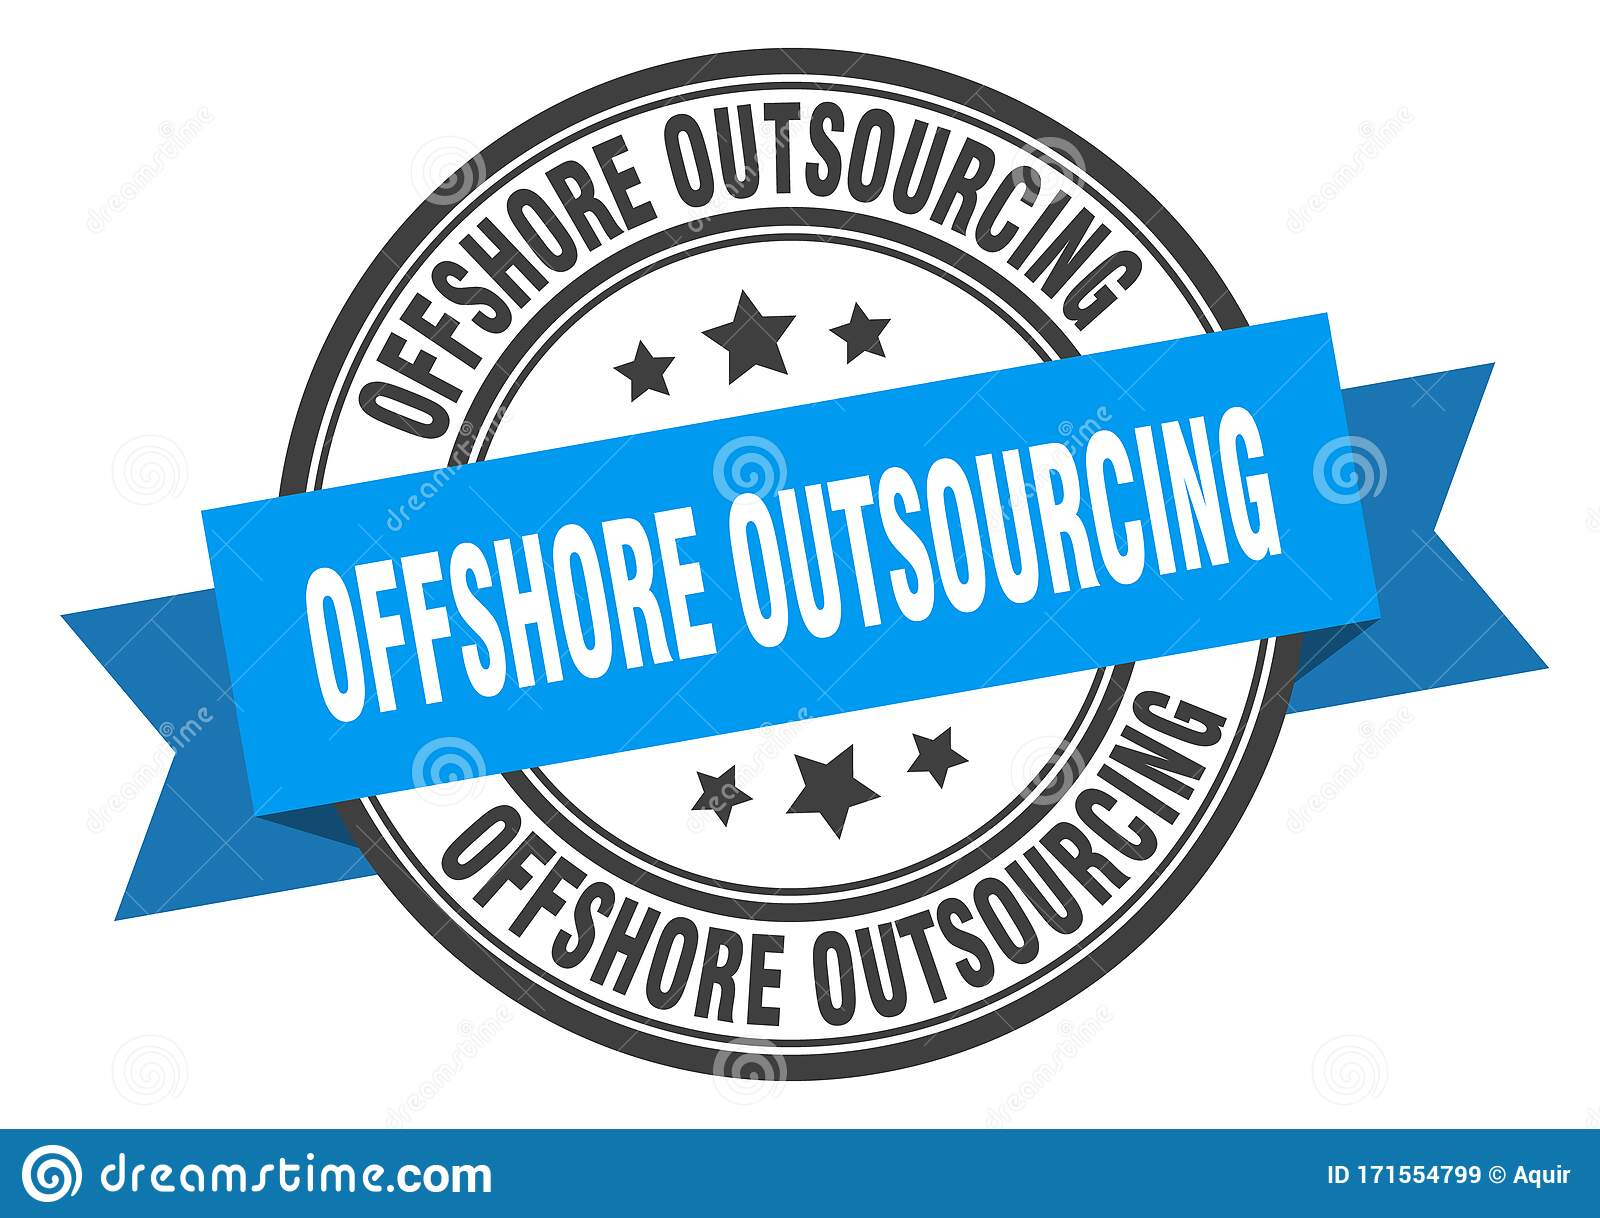 Offshore Outsourcing Label. Offshore Outsourcing Round Band Sign. Stock  Vector - Illustration of circle, outsourcing: 171554799